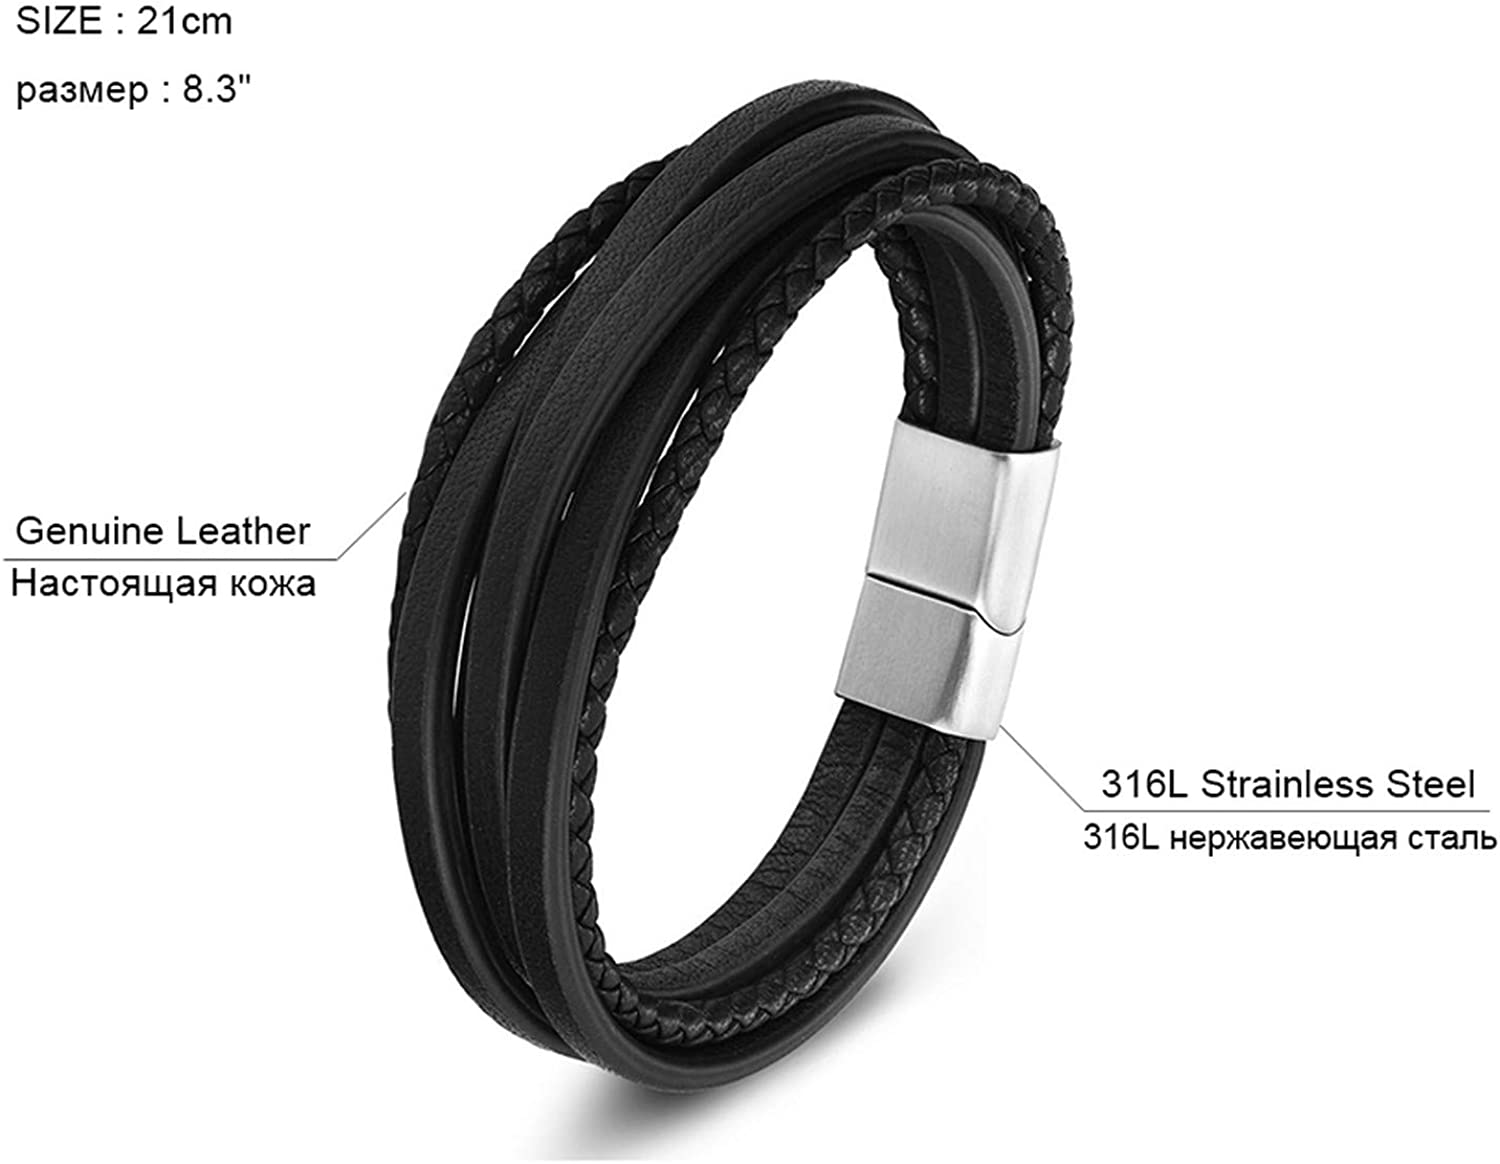 B0813LM2JS 2019 Fashion Stainless Steel Chain Genuine Leather Bracelet Men Vintage Male Braid Jewelry for Women 61E7XQeVjML